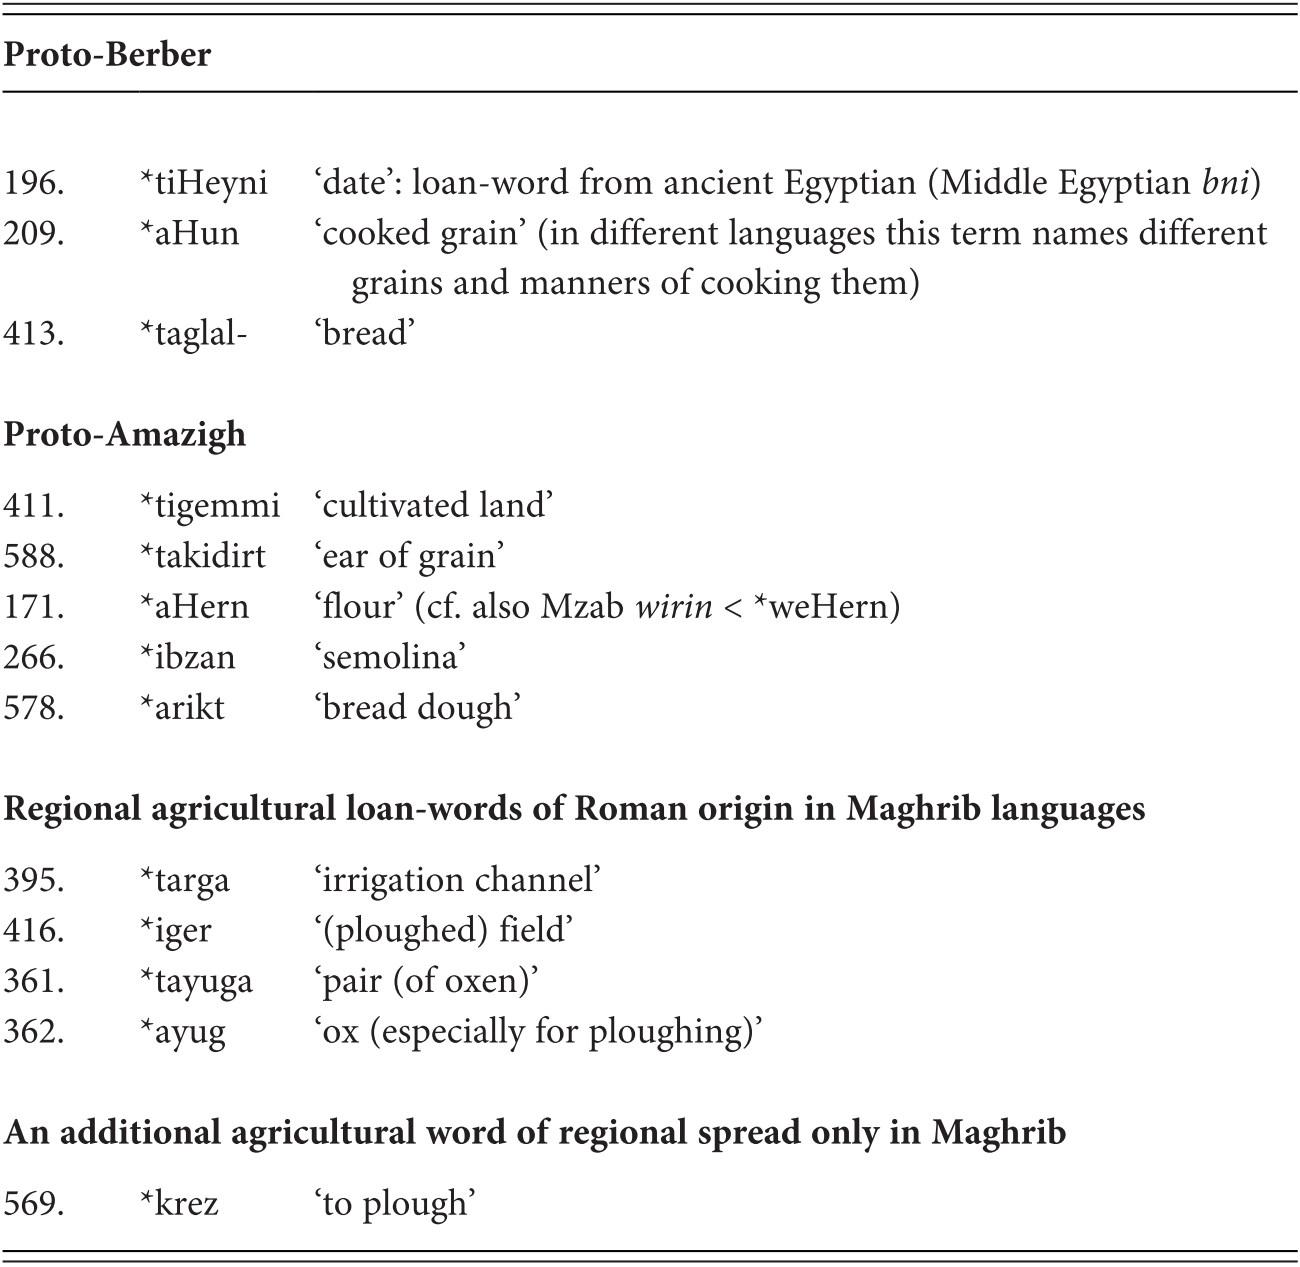 Linguistic Aspects of Migration and Identity (Part VI